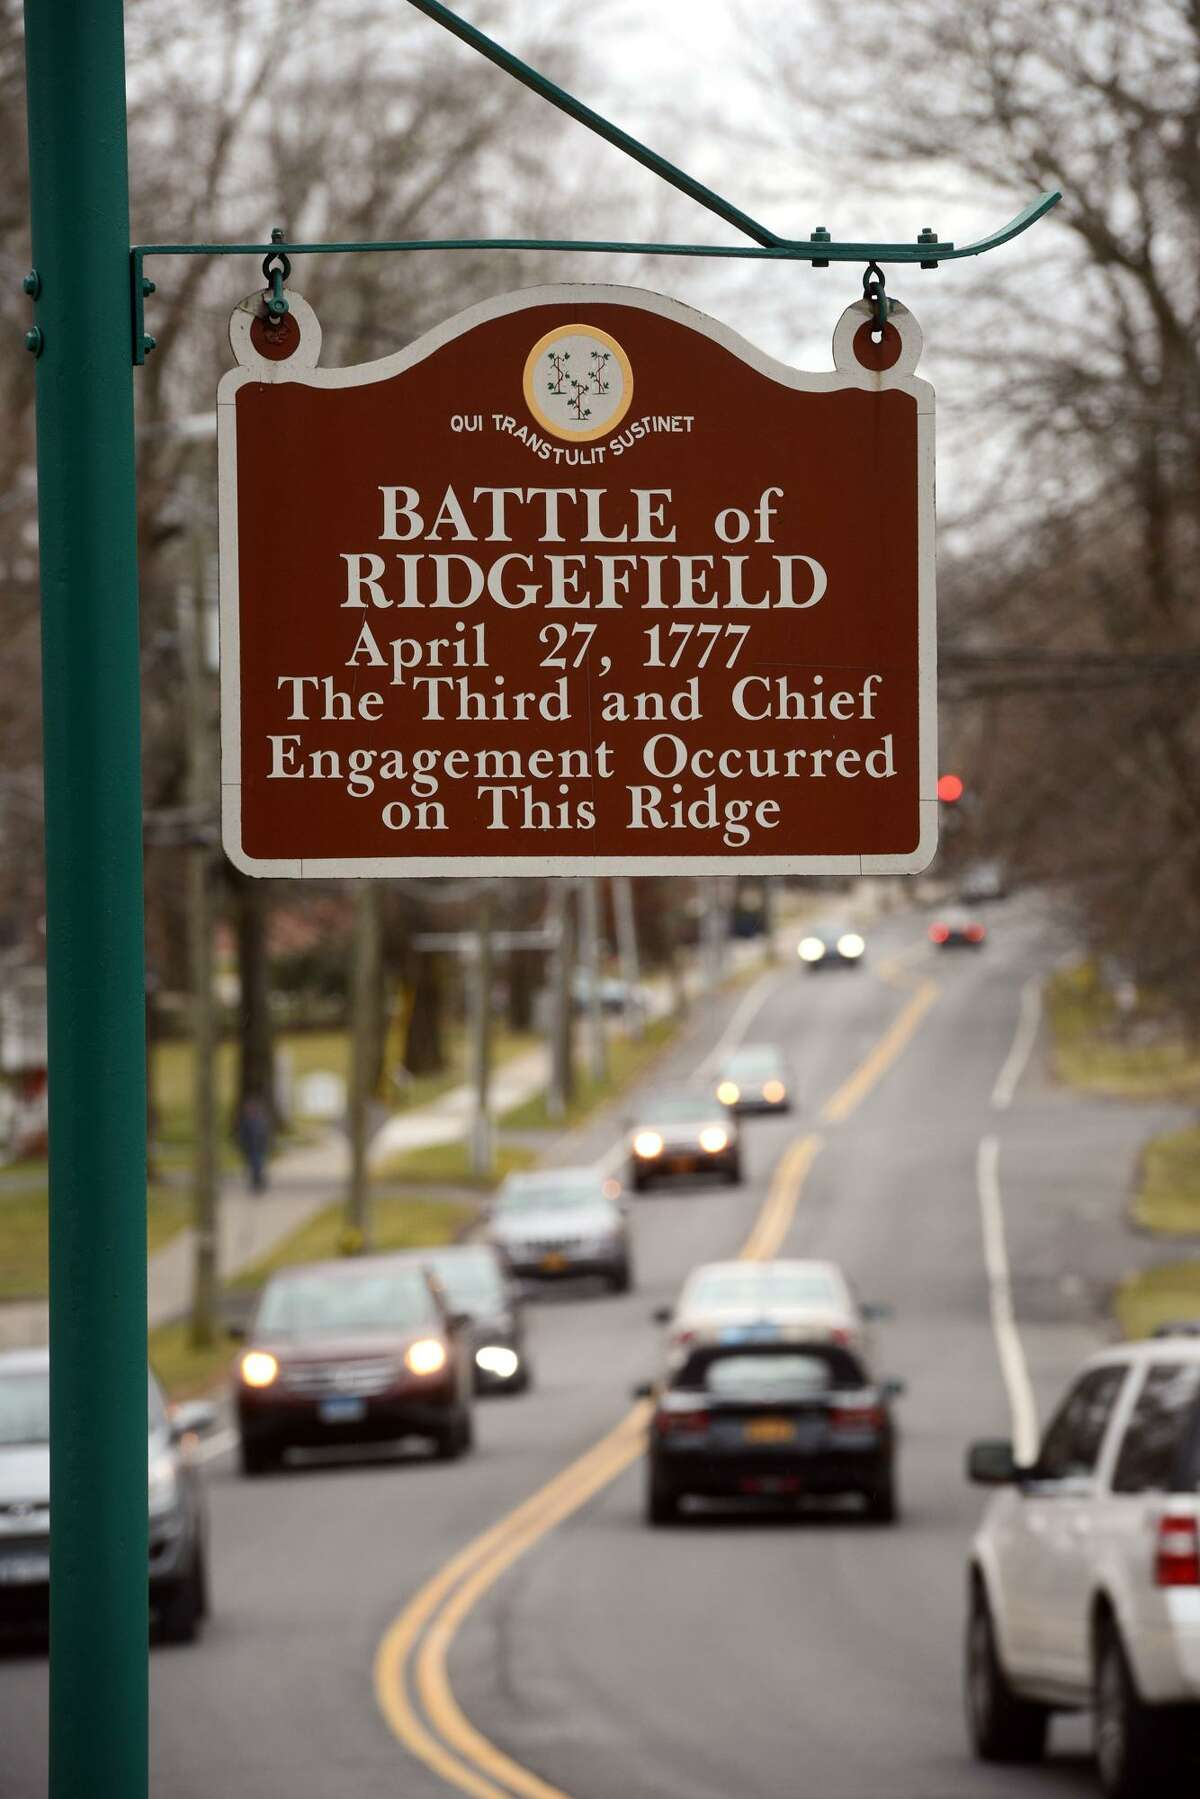 A sign marks the location of the Battle of Ridgefield, in Ridgefield, Conn.